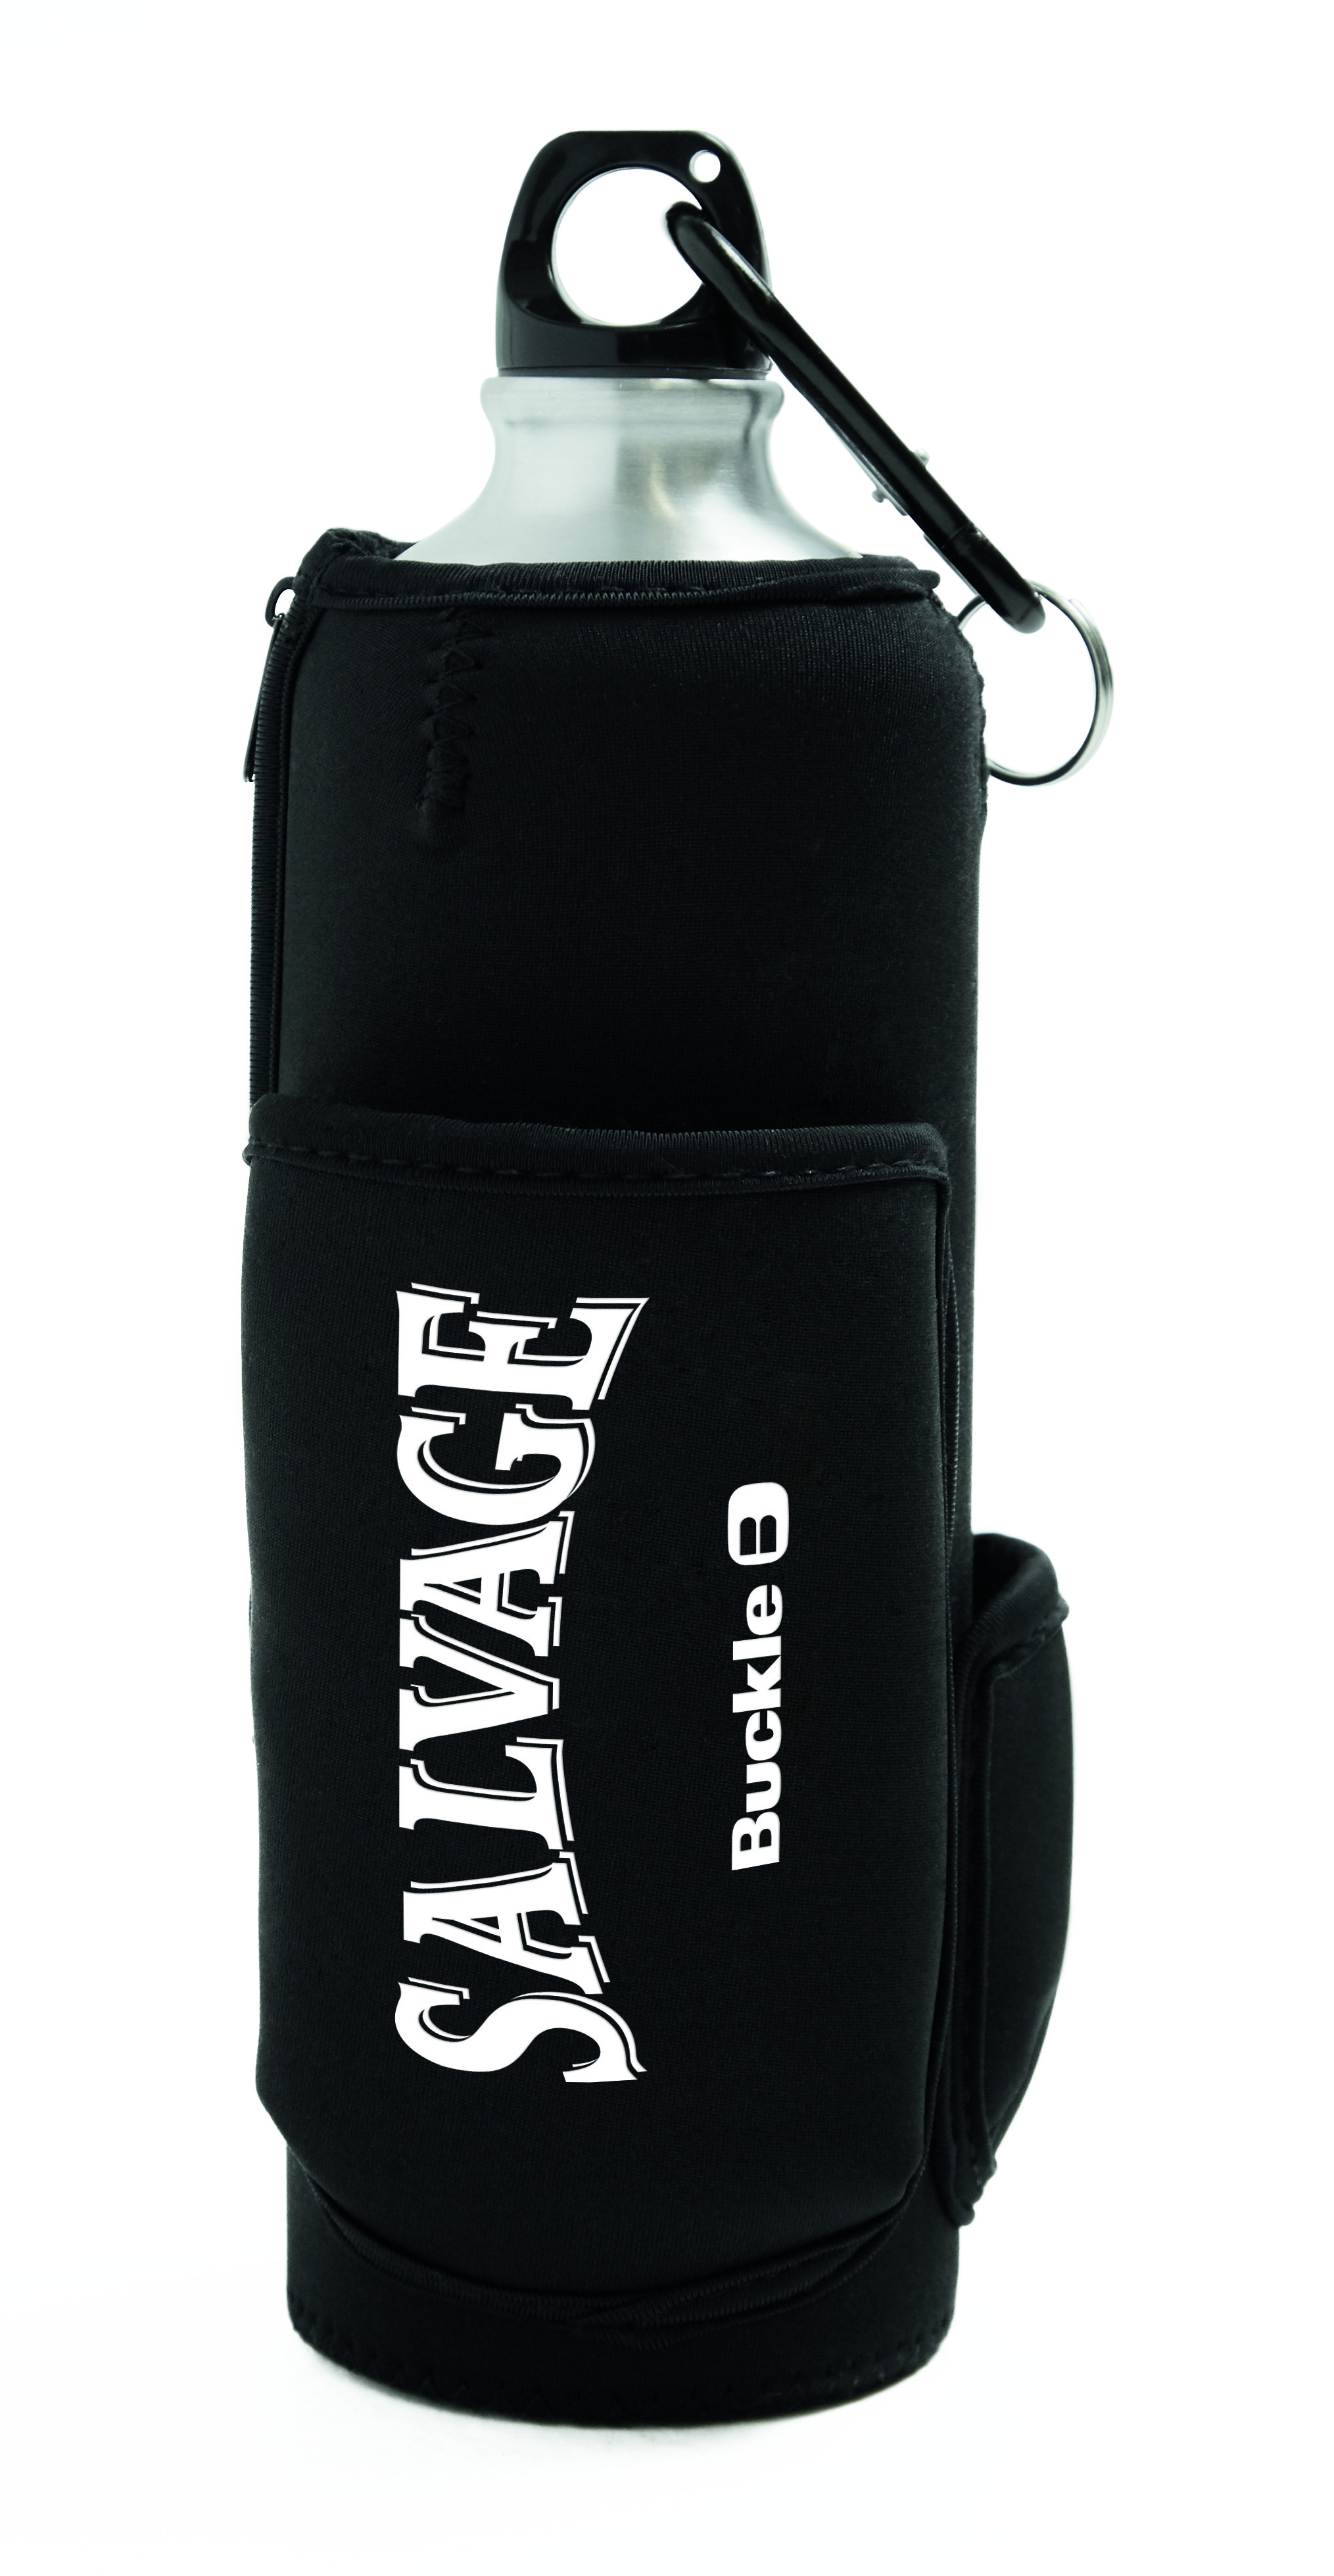 Buckle Brand Event - Salvage Water Bottle